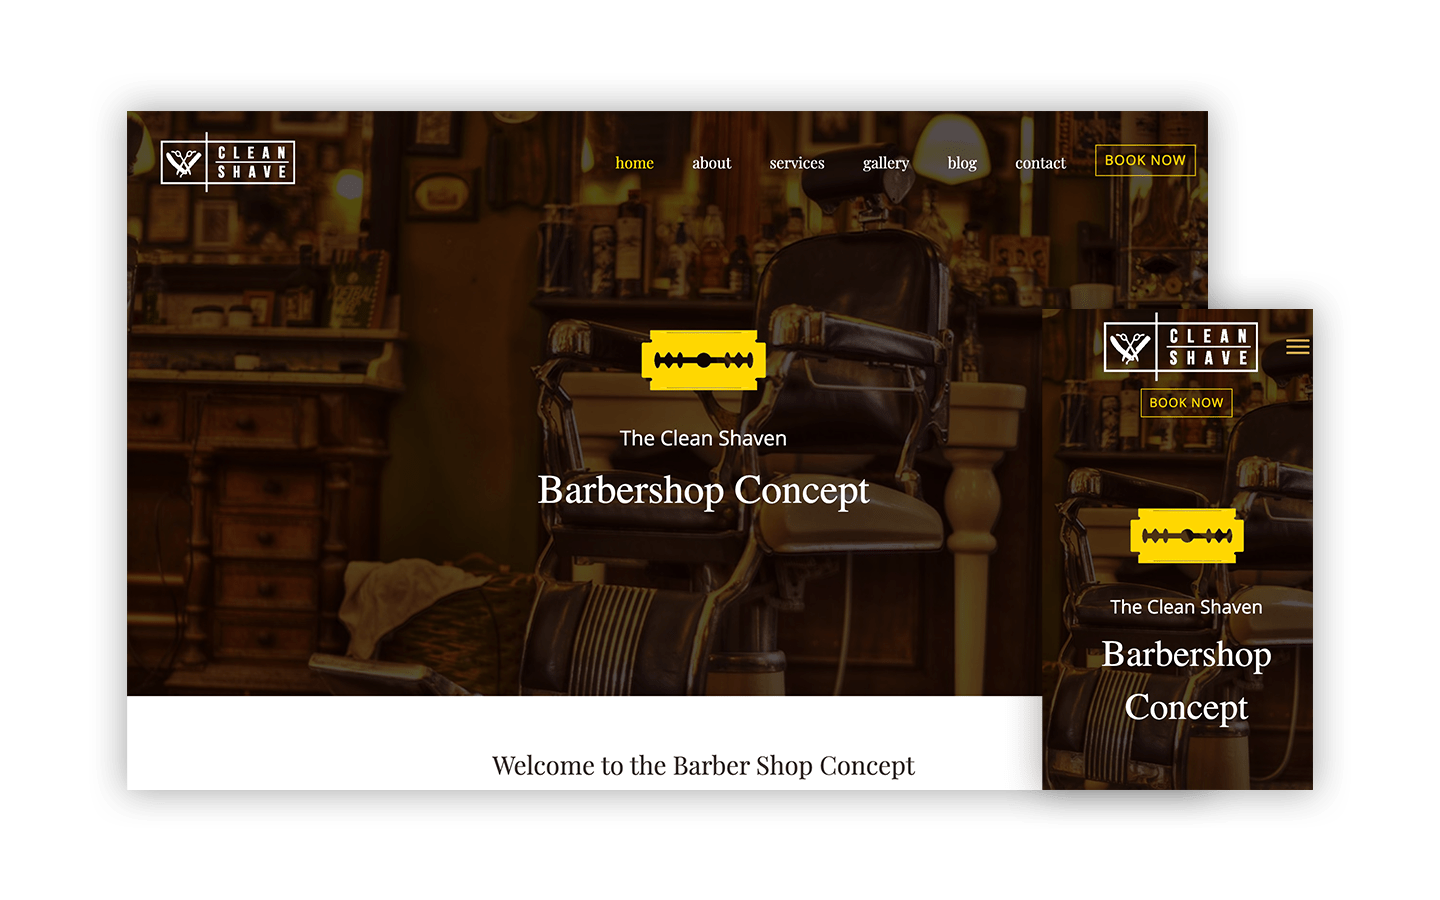 Barbershop Concept Website